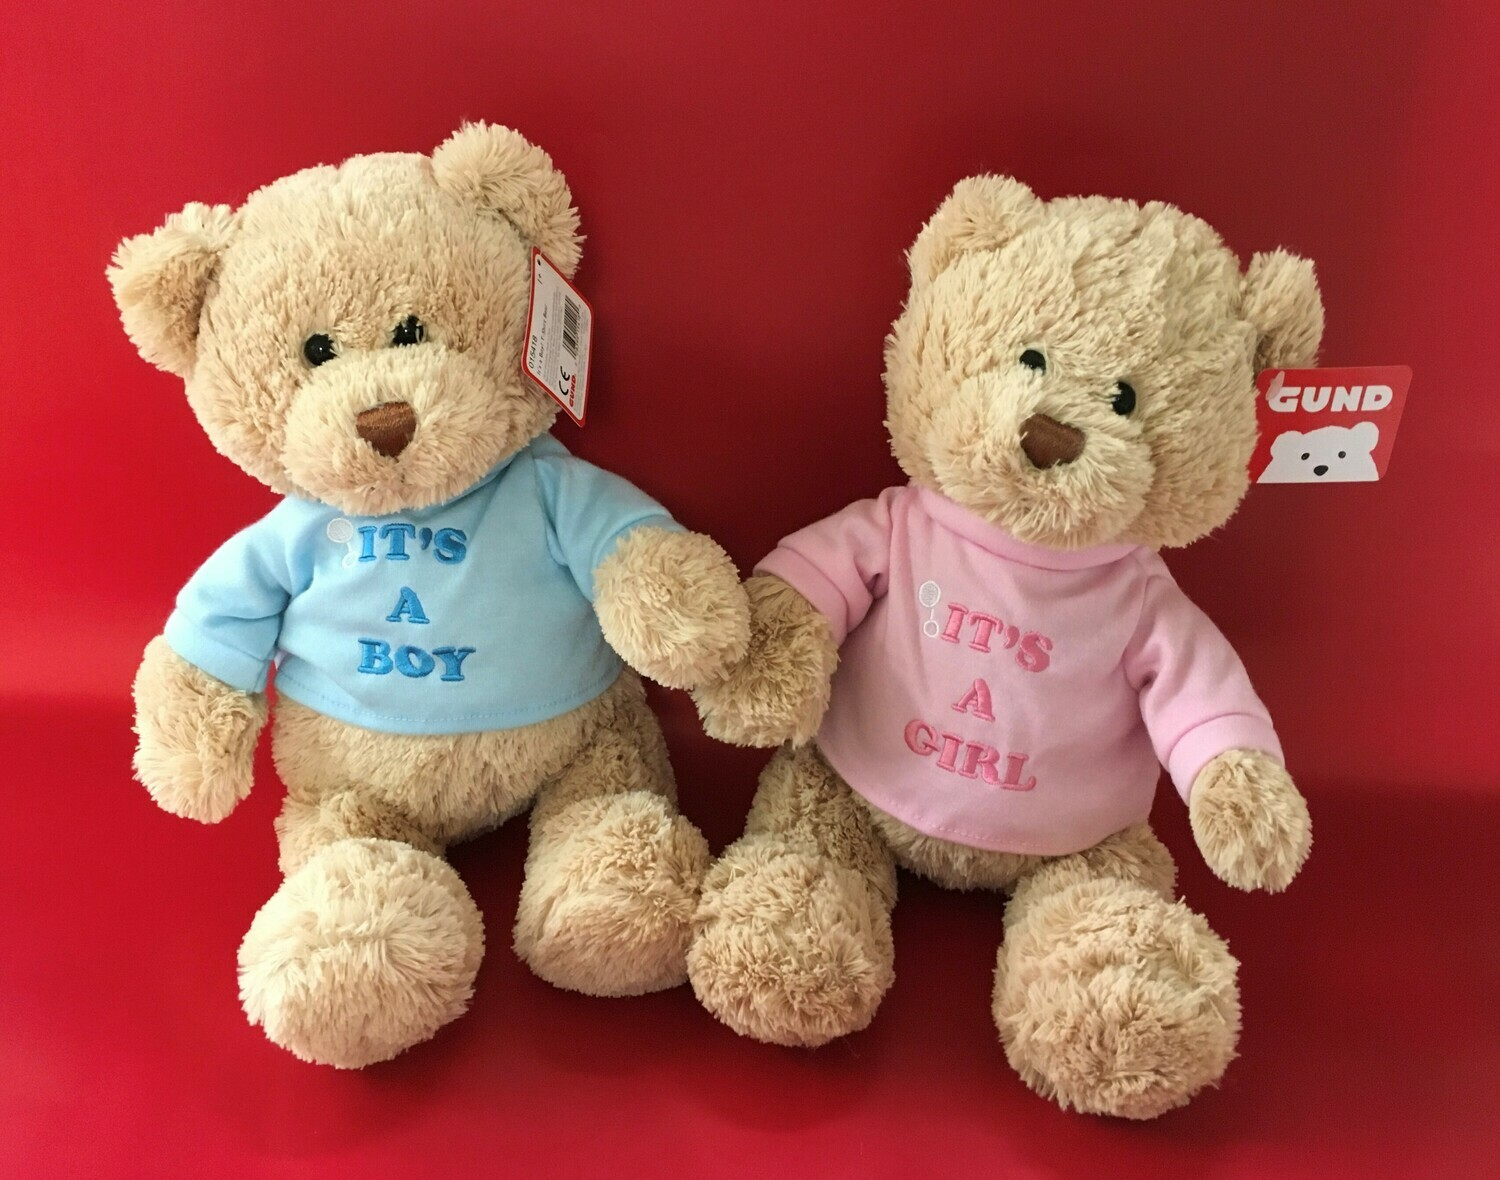 It's a Boy or It's a Girl Bear from Gund.